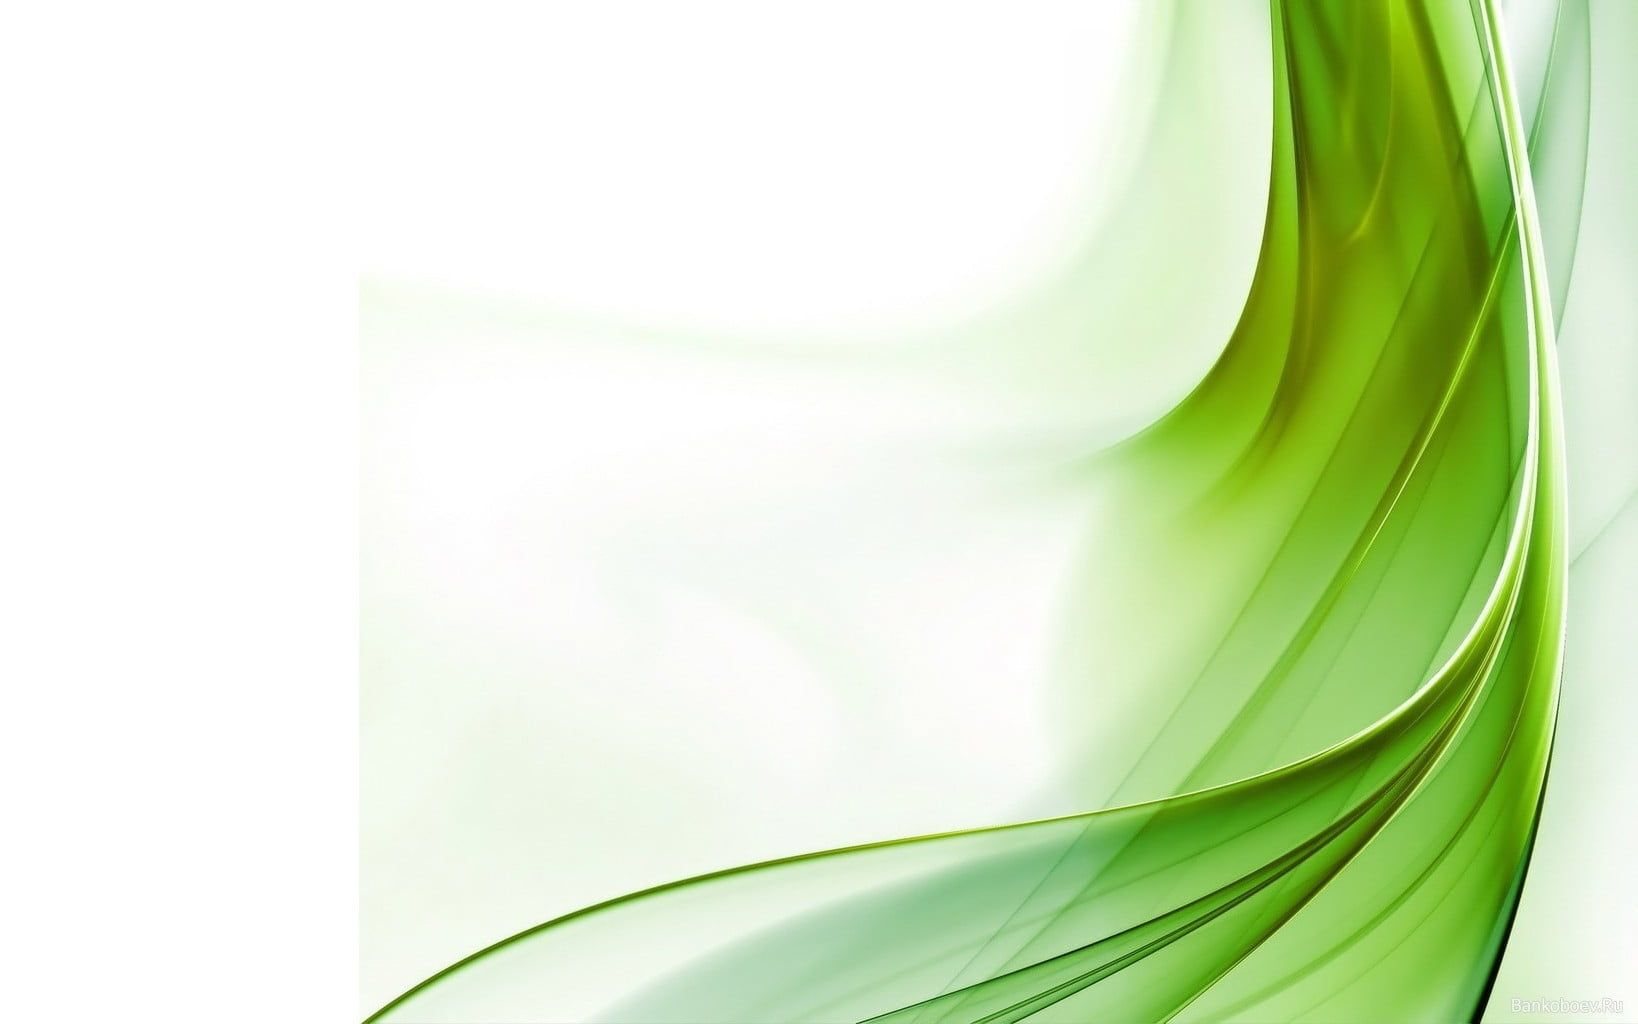 Green And White Digital Wallpaper Abstract Green Digital Art Artwork 720p Wallpaper Hdwallpaper Desktop Digital Wallpaper Abstract Abstract Digital Art Green and white wallpaper for walls